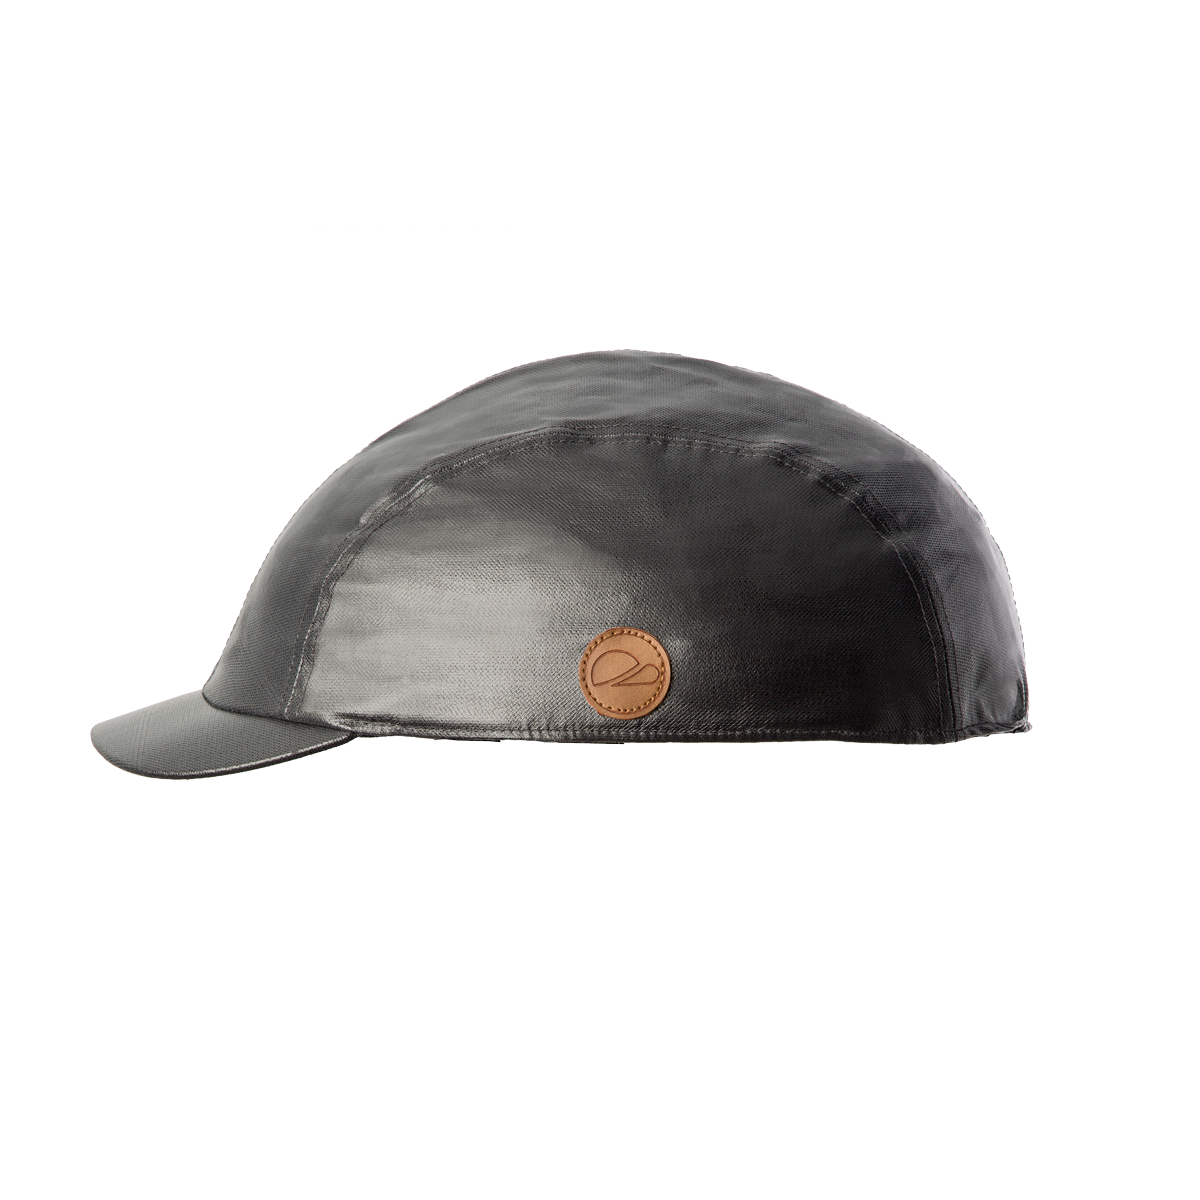 CLOSCA-FLATCAP-WATERPROOF-SIDE